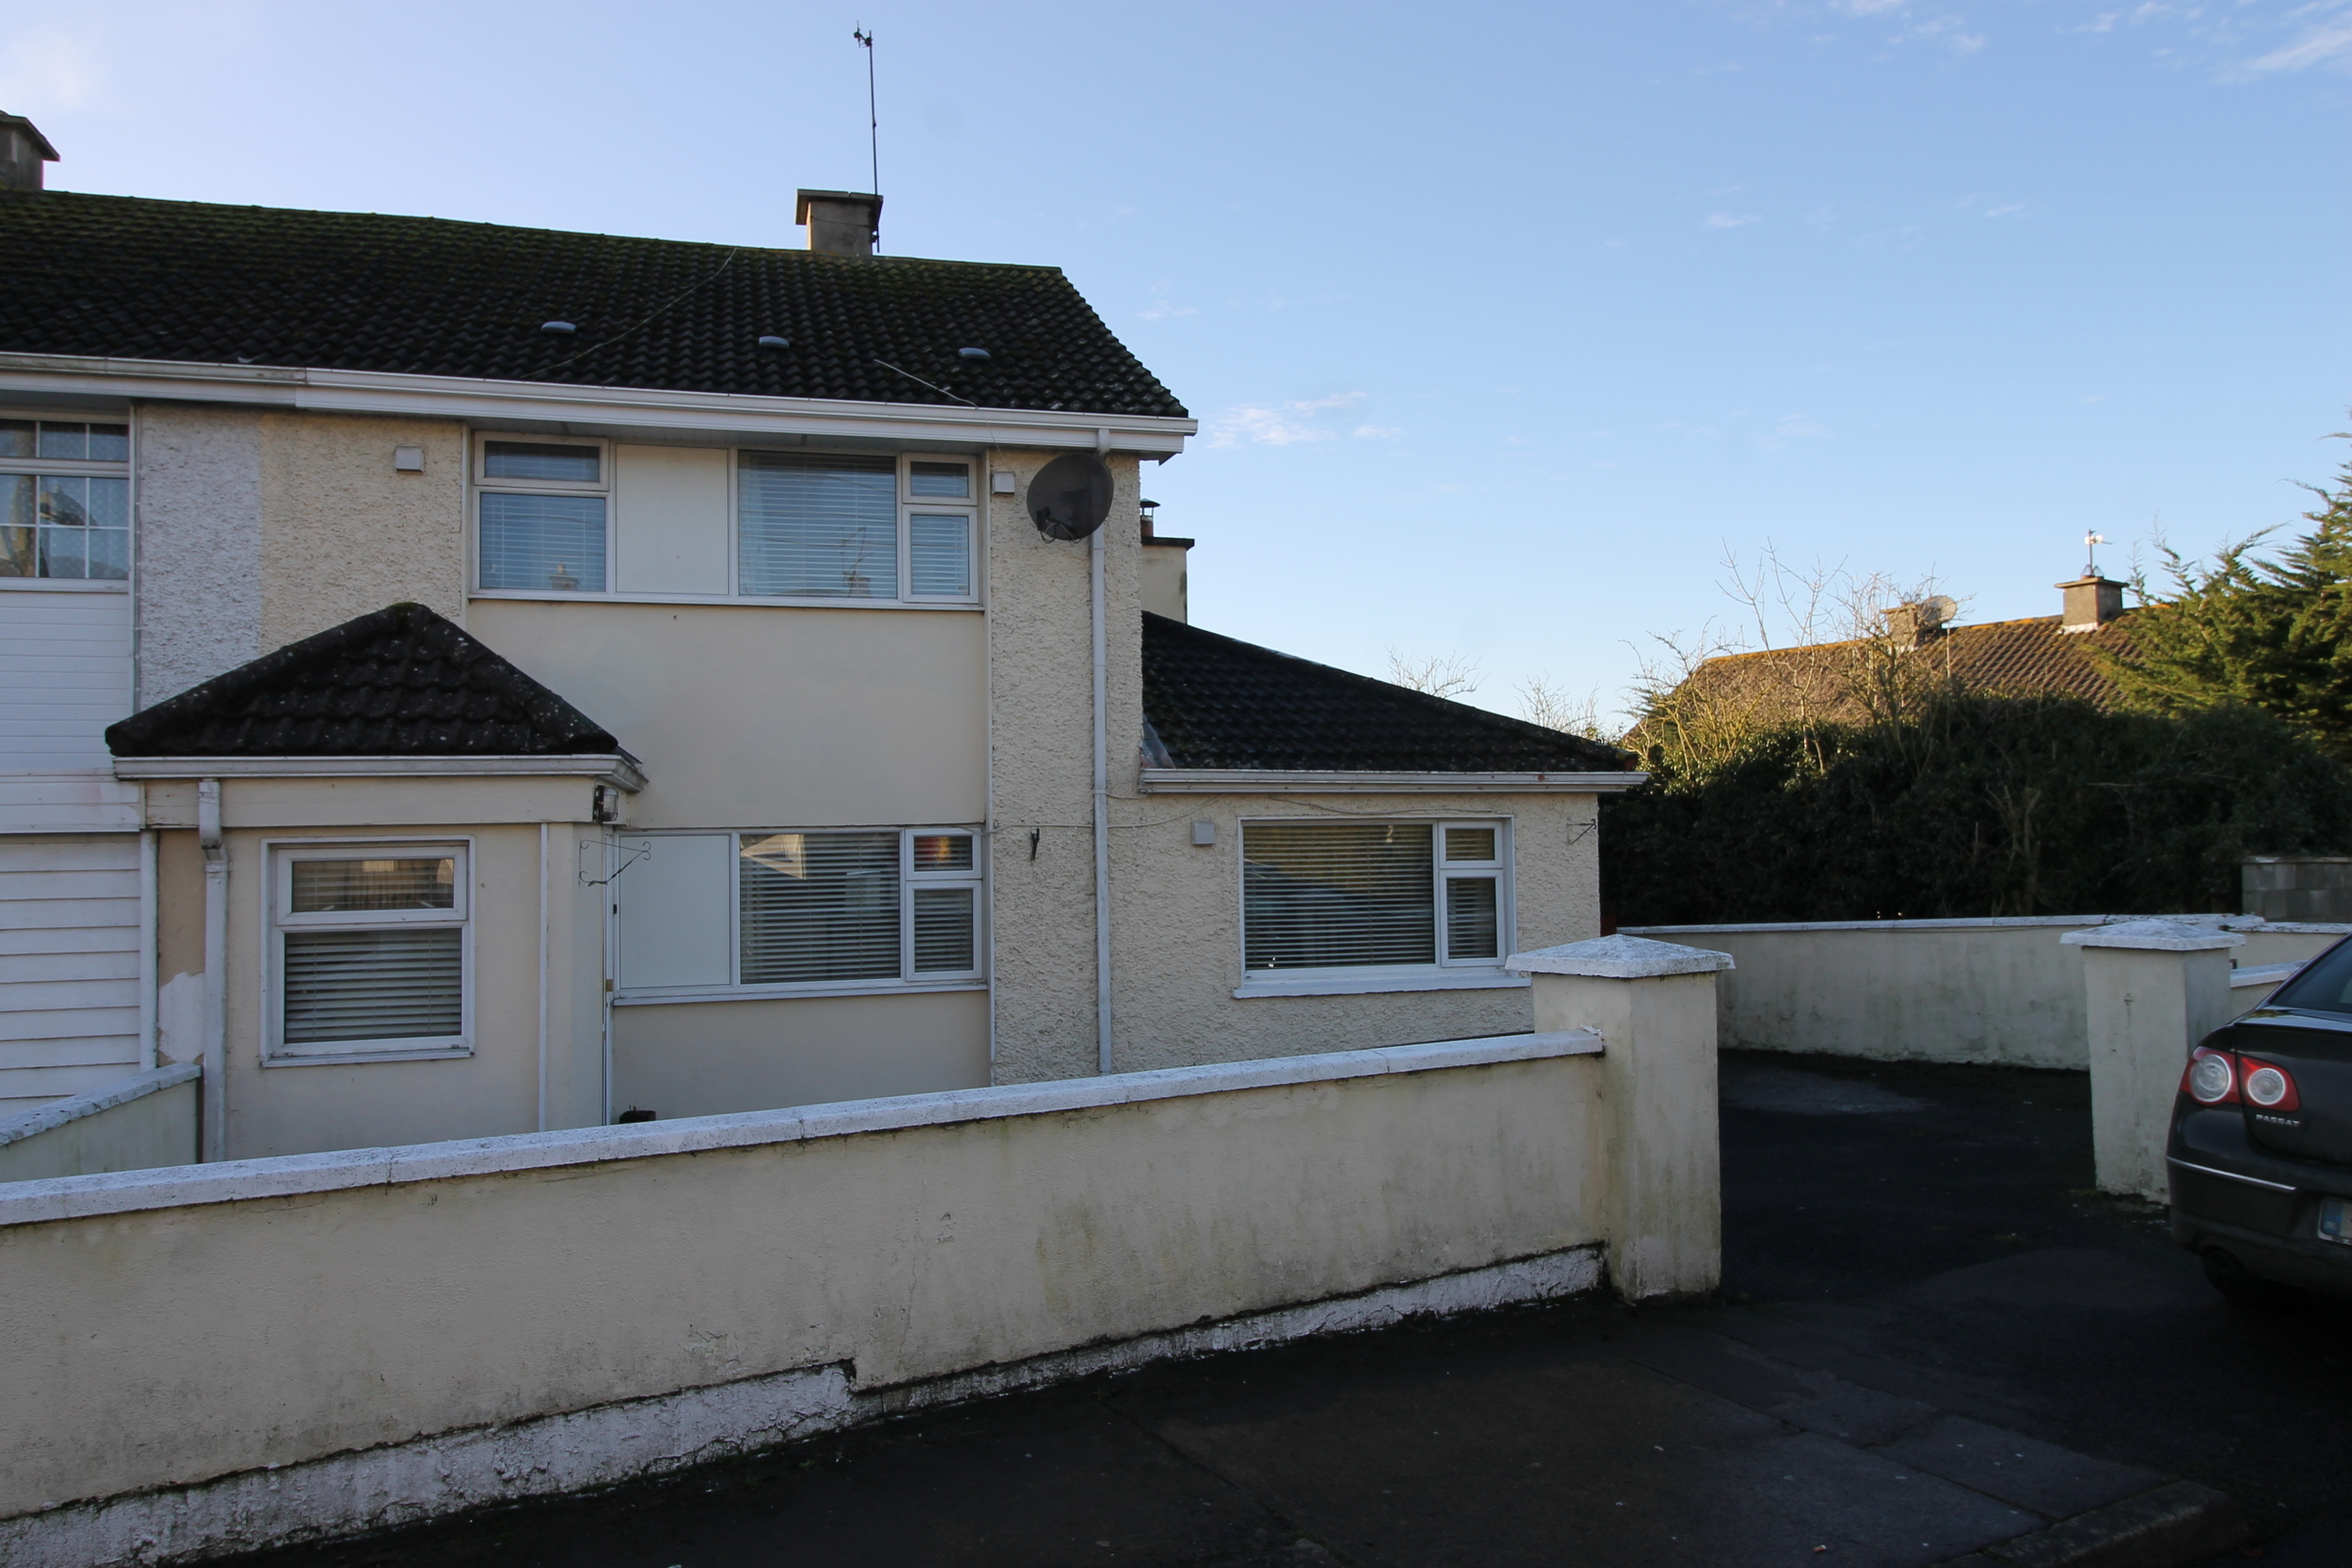 56 Old Moyne Road, Thurles, Co. Tipperary